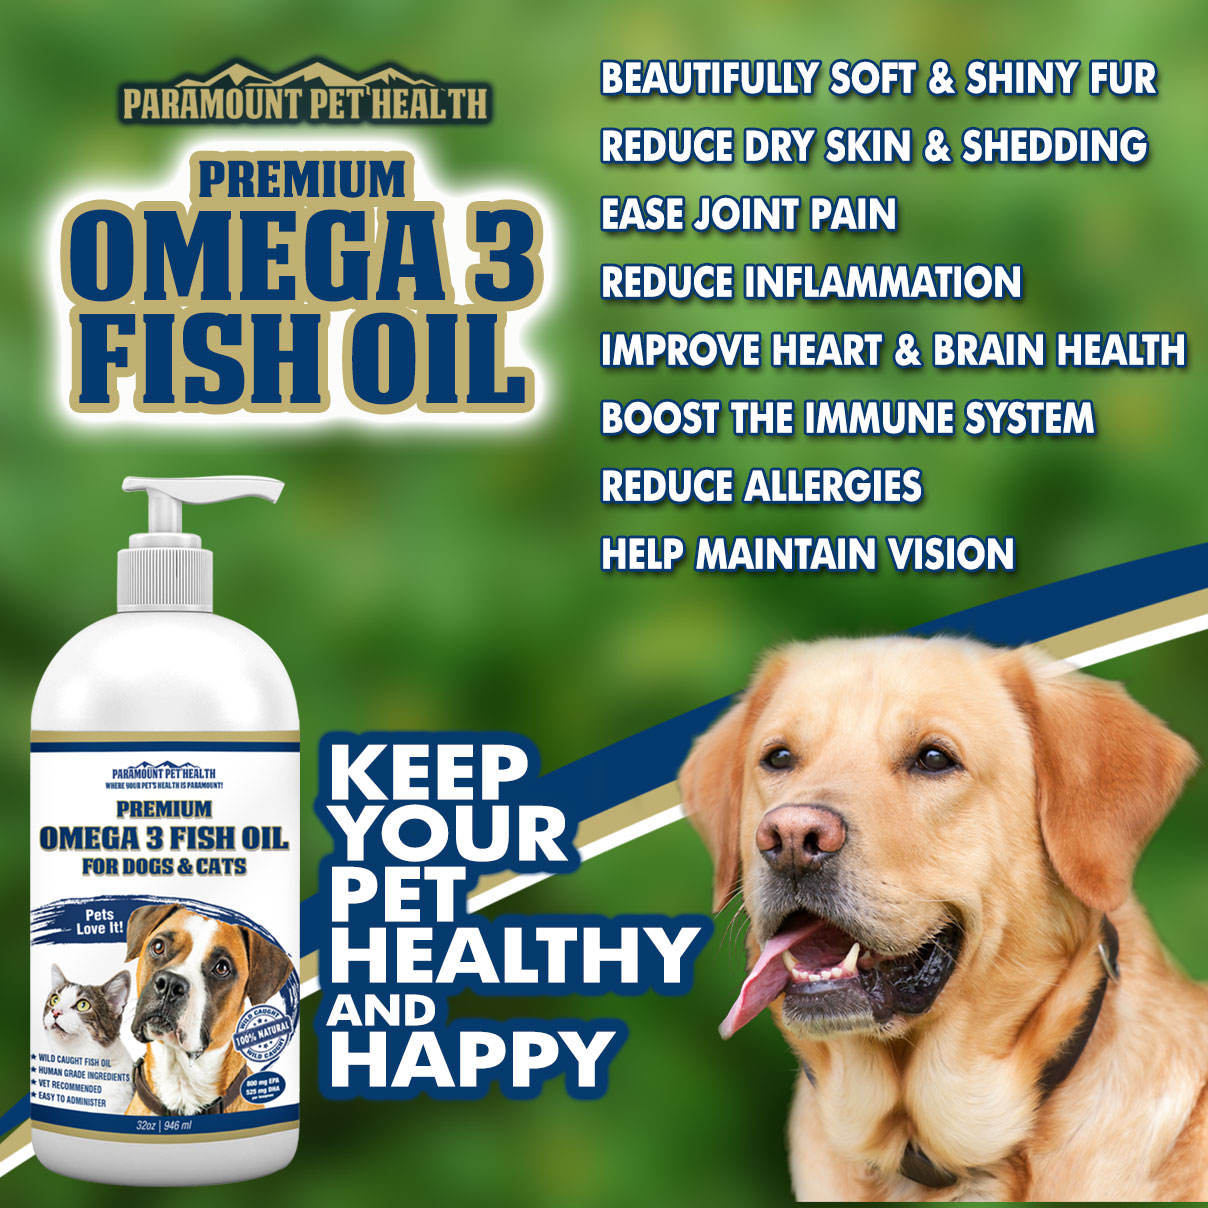 Omega 3 for Dogs and Cats Benefits